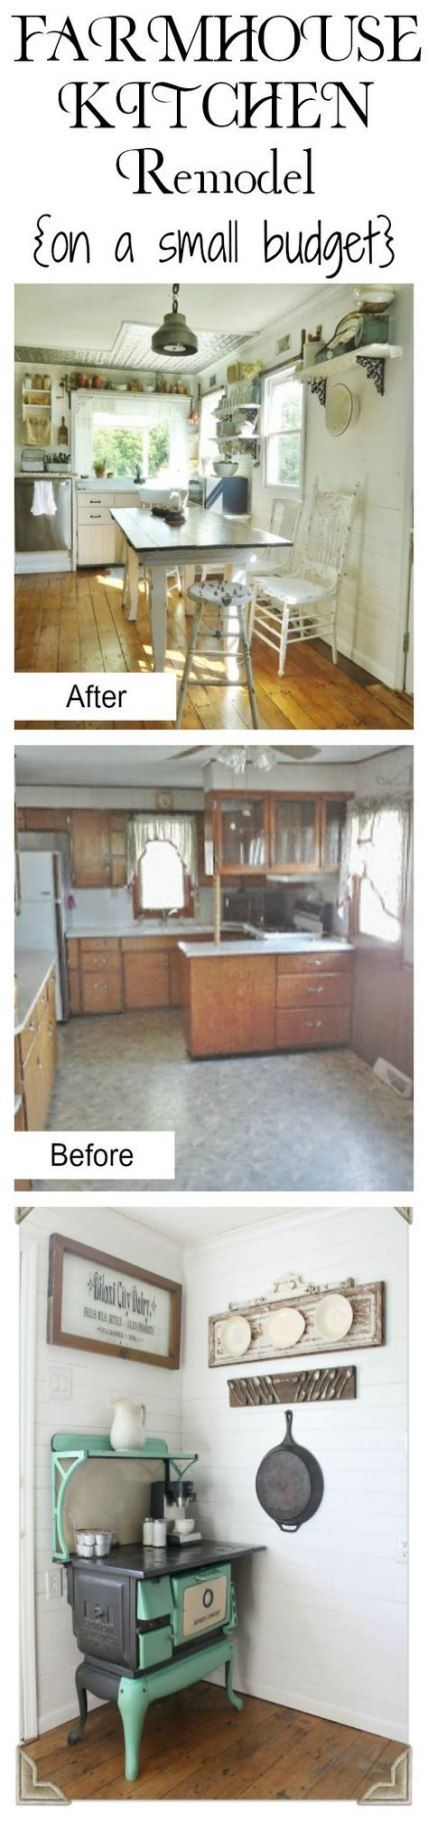 Galley kitchen remodel before and after marbles 51+ Ideas #ikeagalleykitchen